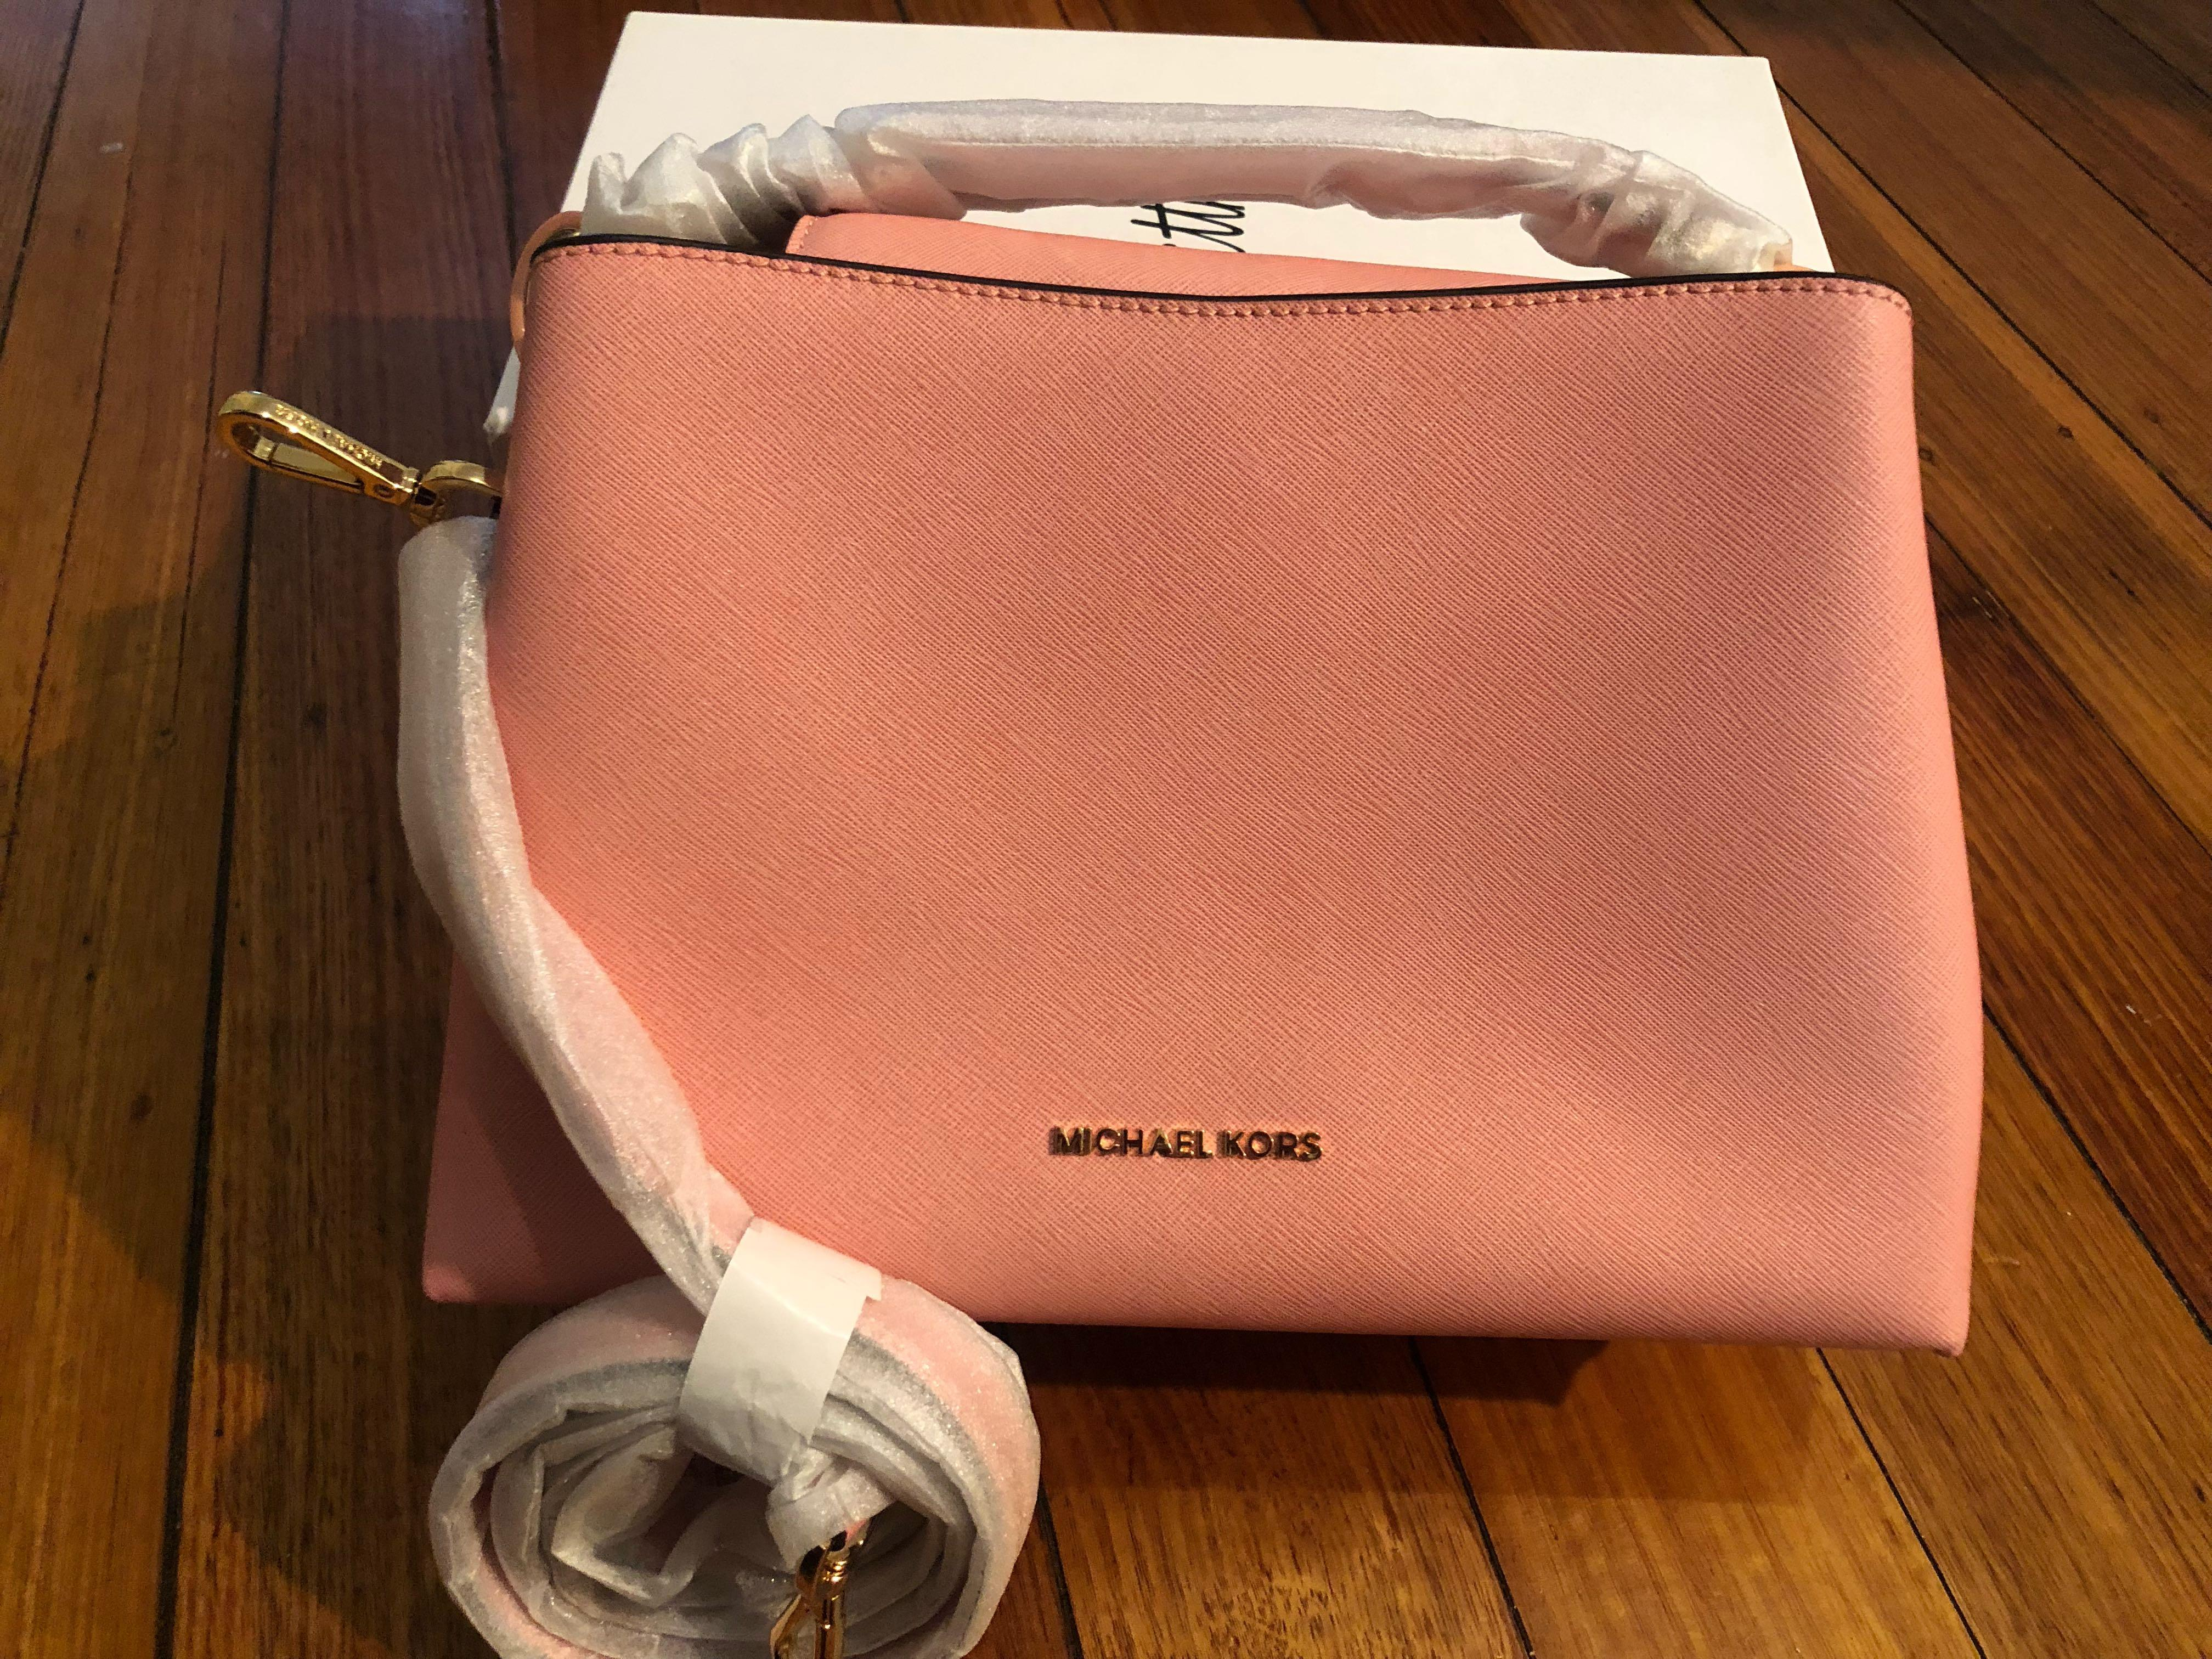 Michael Kors Portia Saffiano Leather Small Shoulder bag in pink